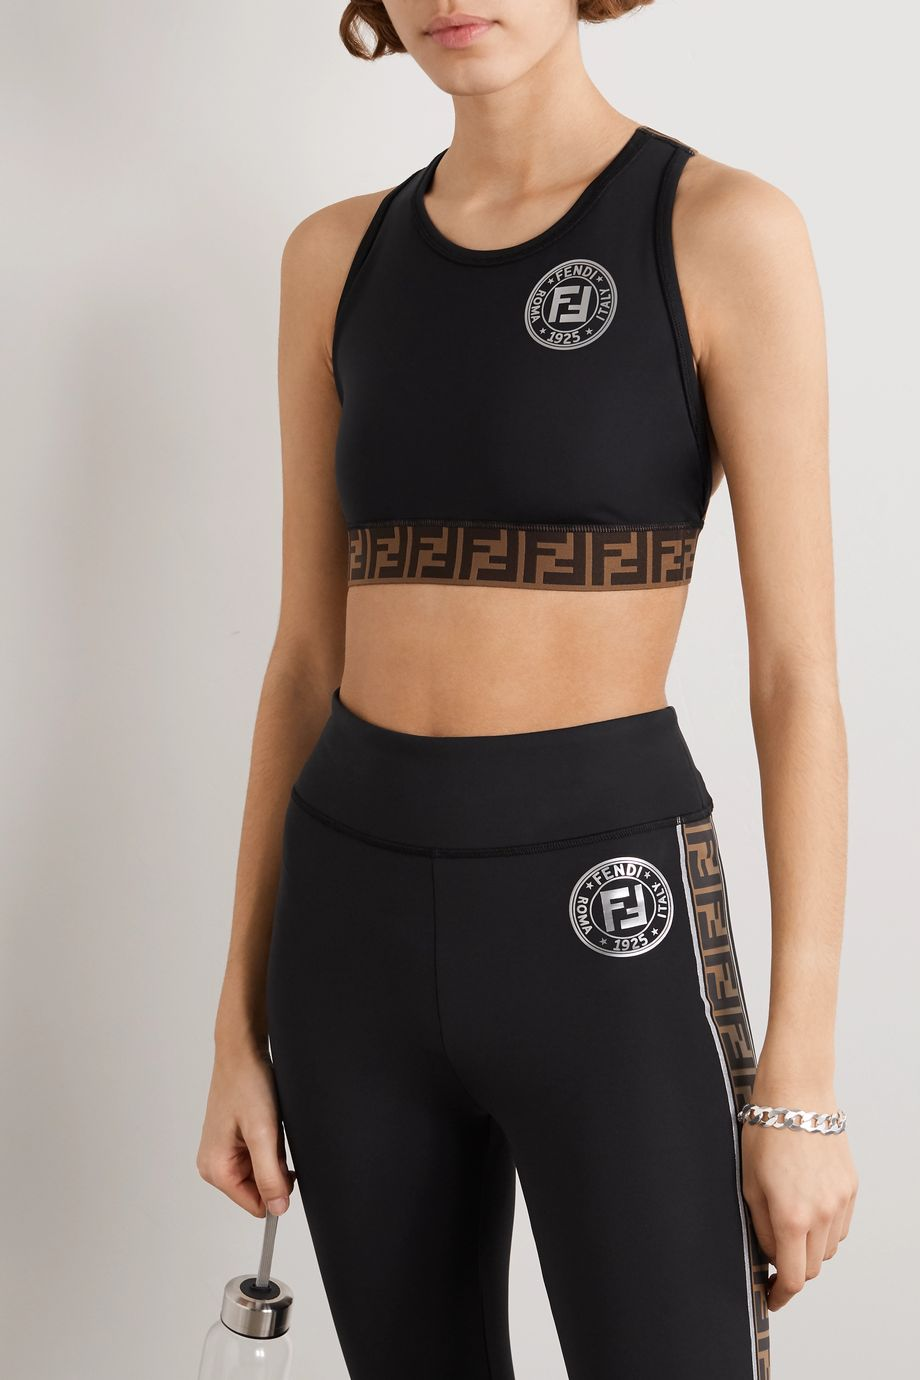 Fendi Printed stretch sports bra